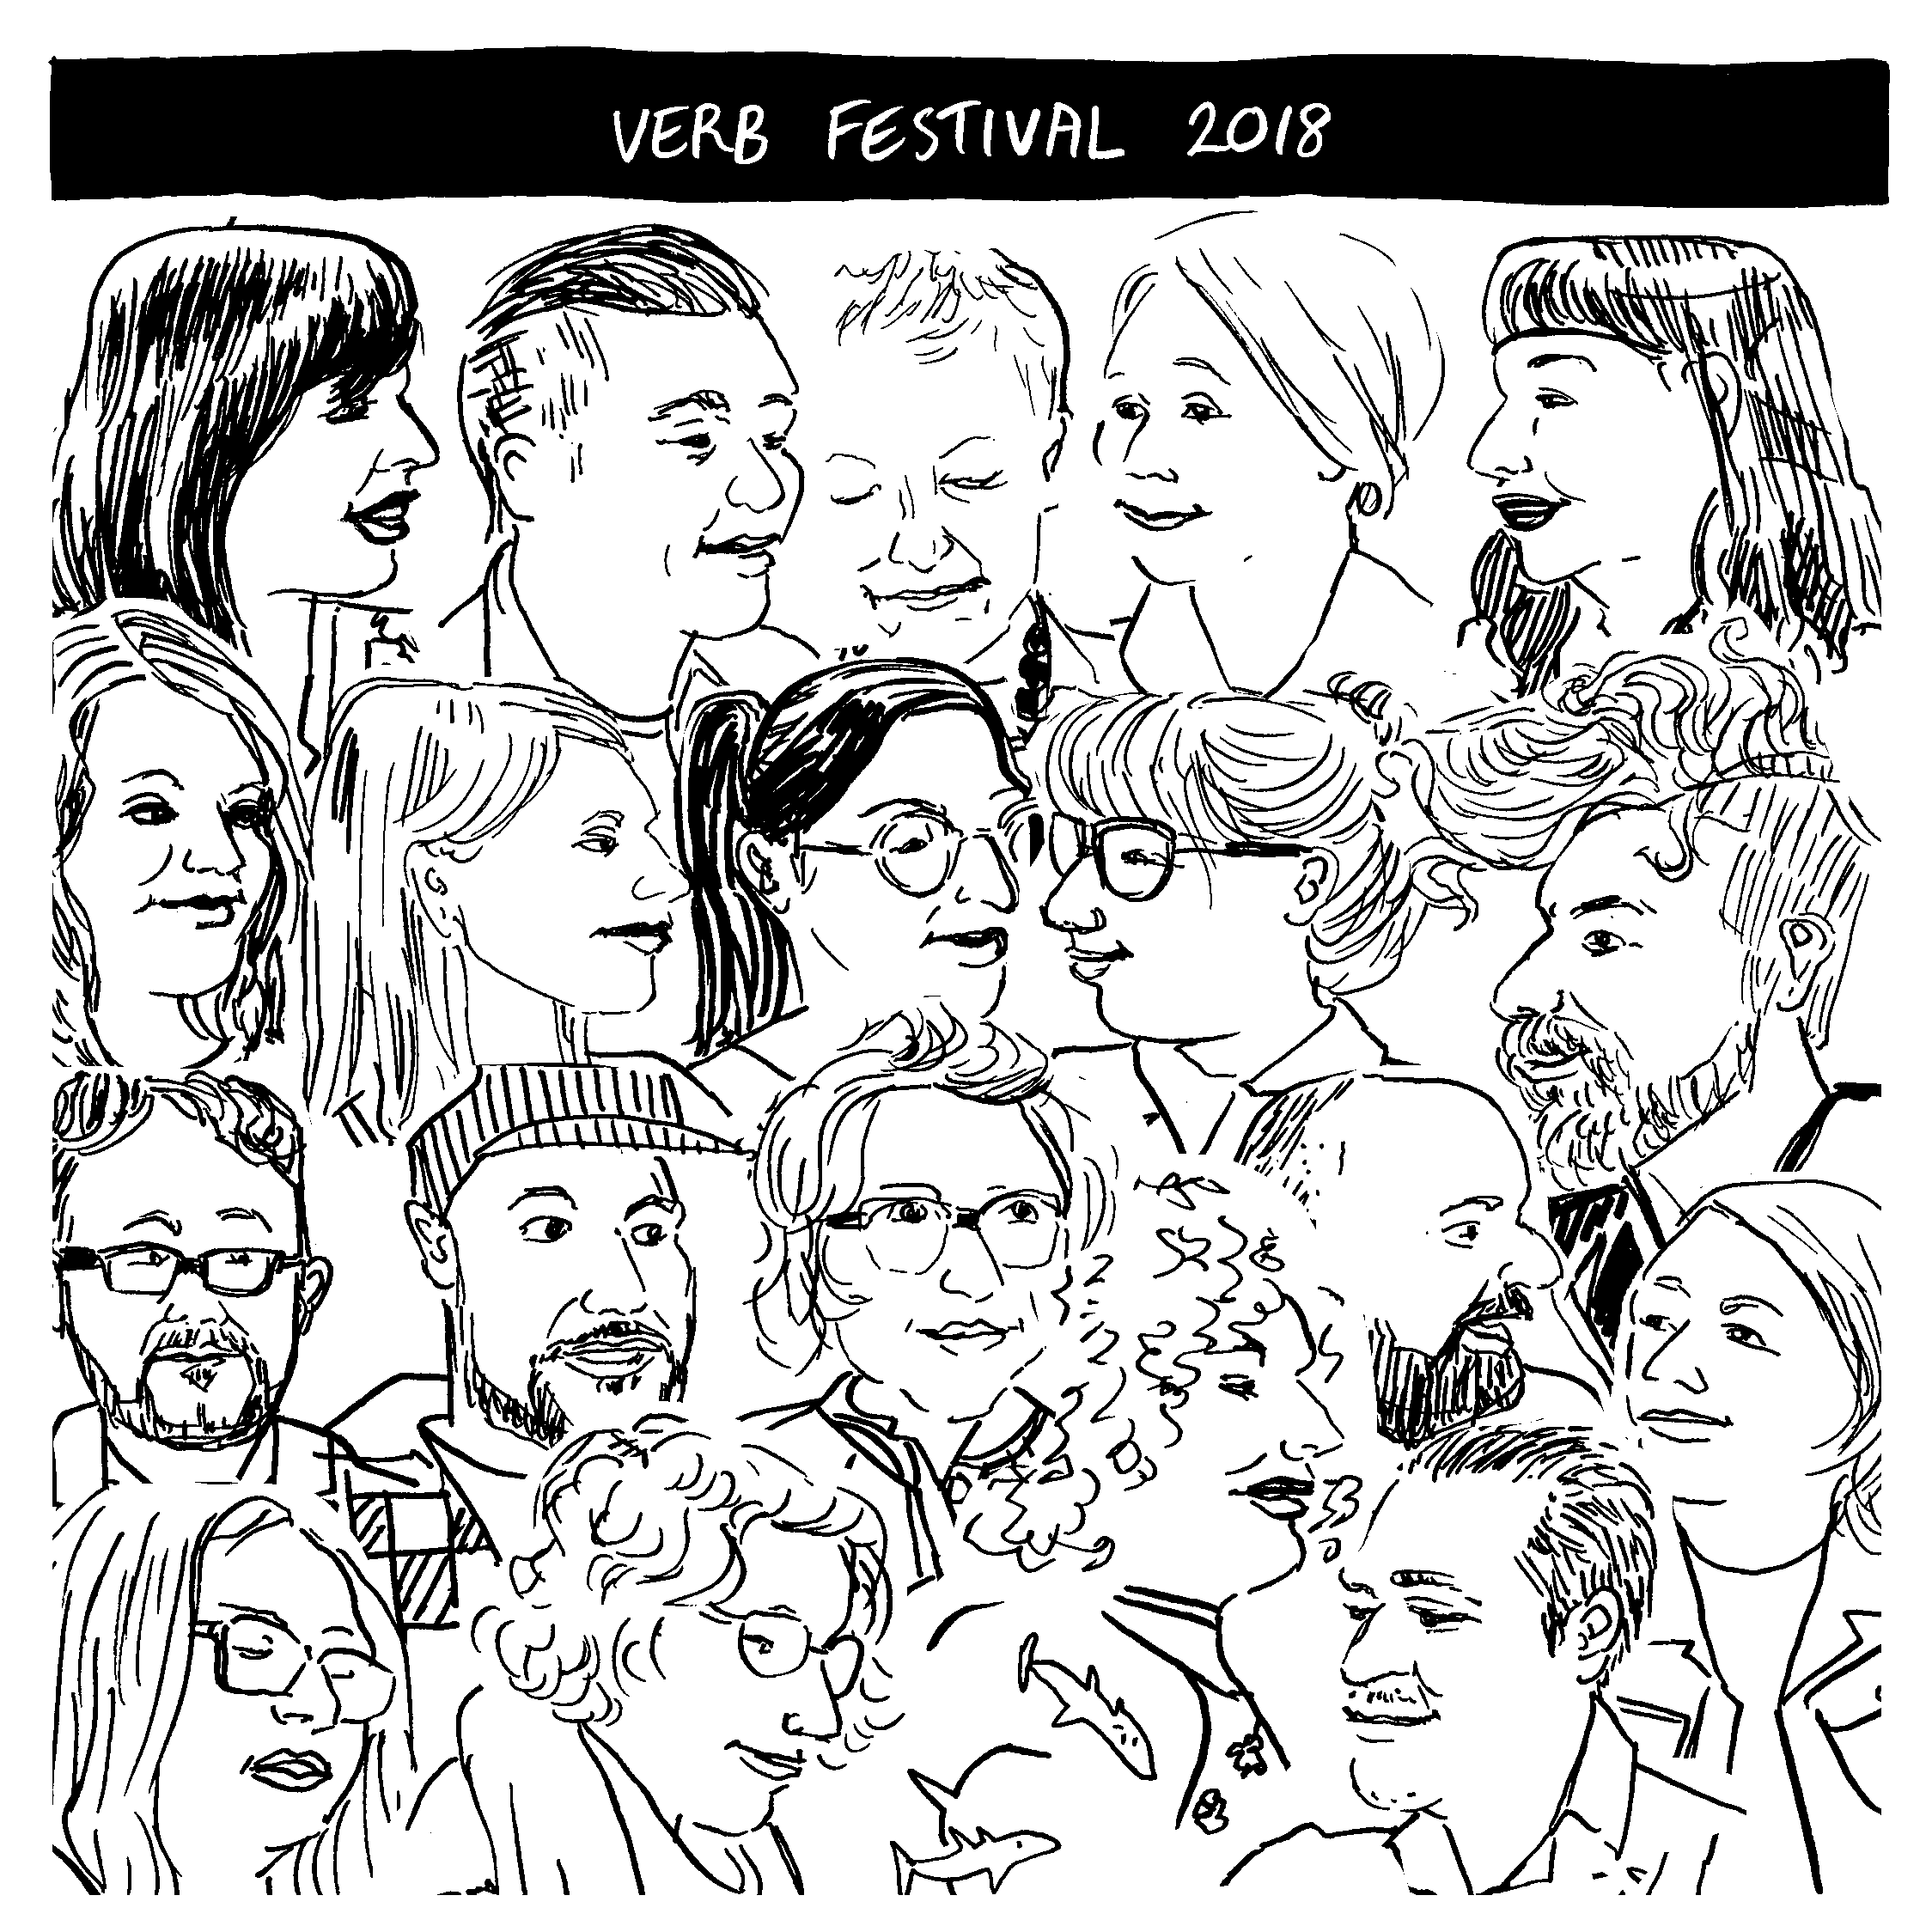 Collage of Tara Black's drawings, made live at Verb Festival 2018